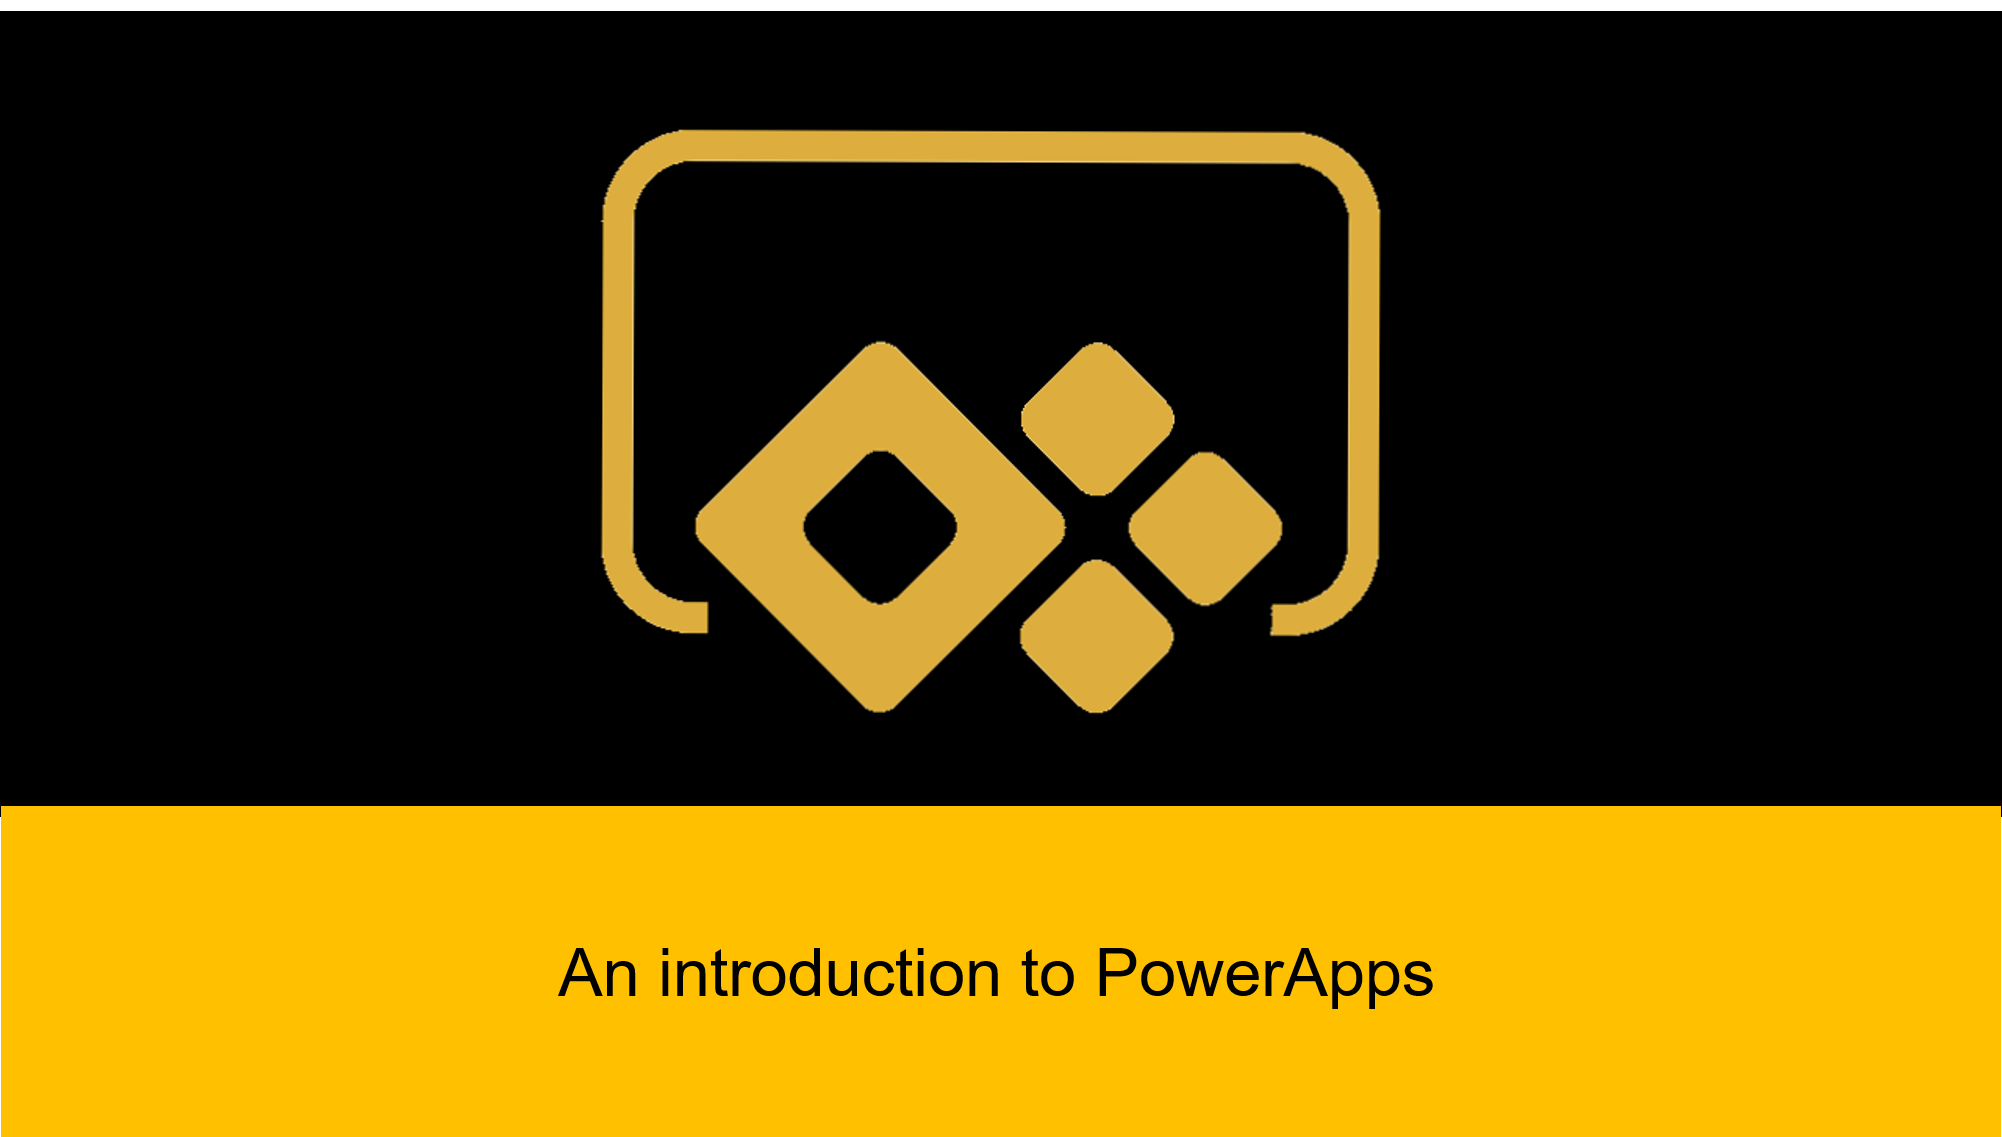 I will introduce you to PowerApps